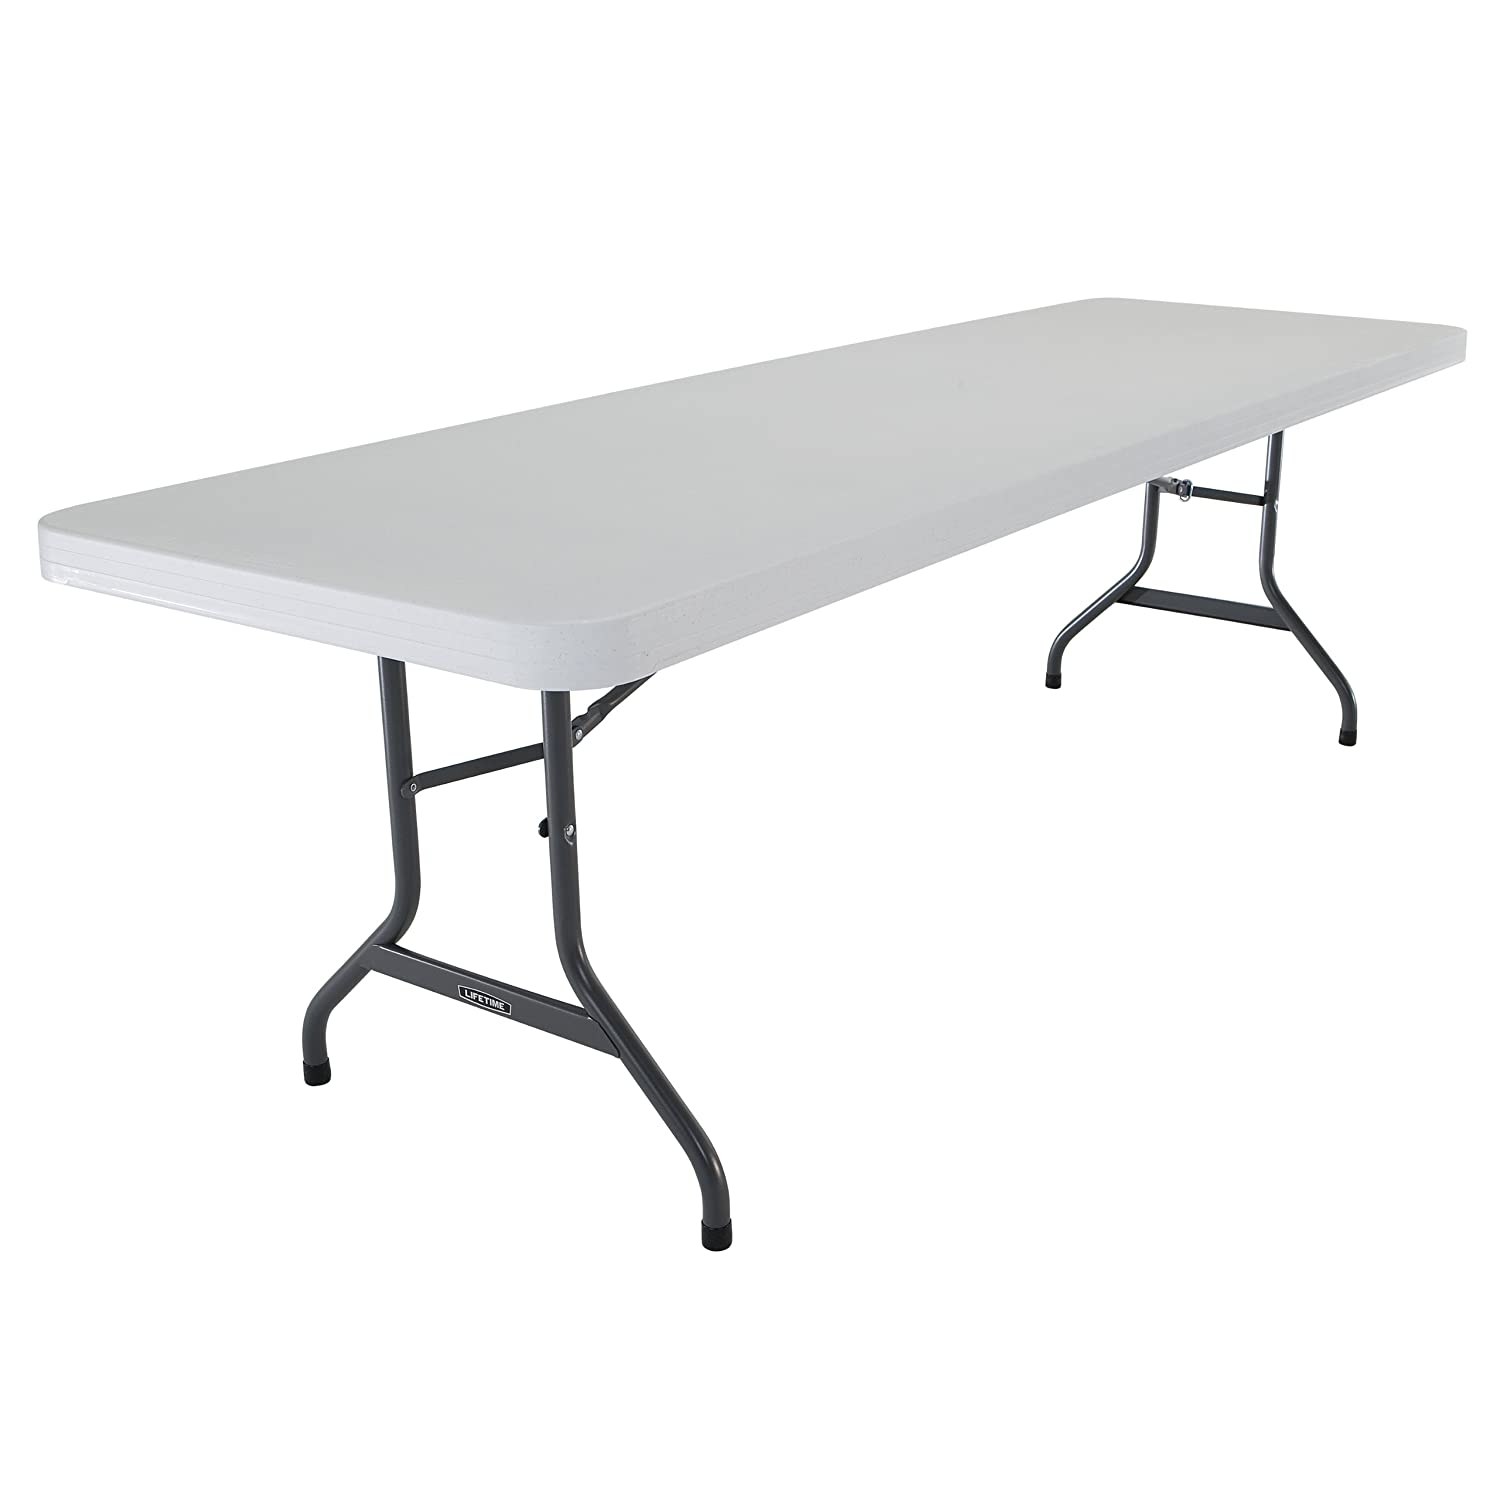 Attrayant Amazon.com : Lifetime 22984 Folding Utility Table, 8 Feet, Almond : Folding  Patio Tables : Garden U0026 Outdoor